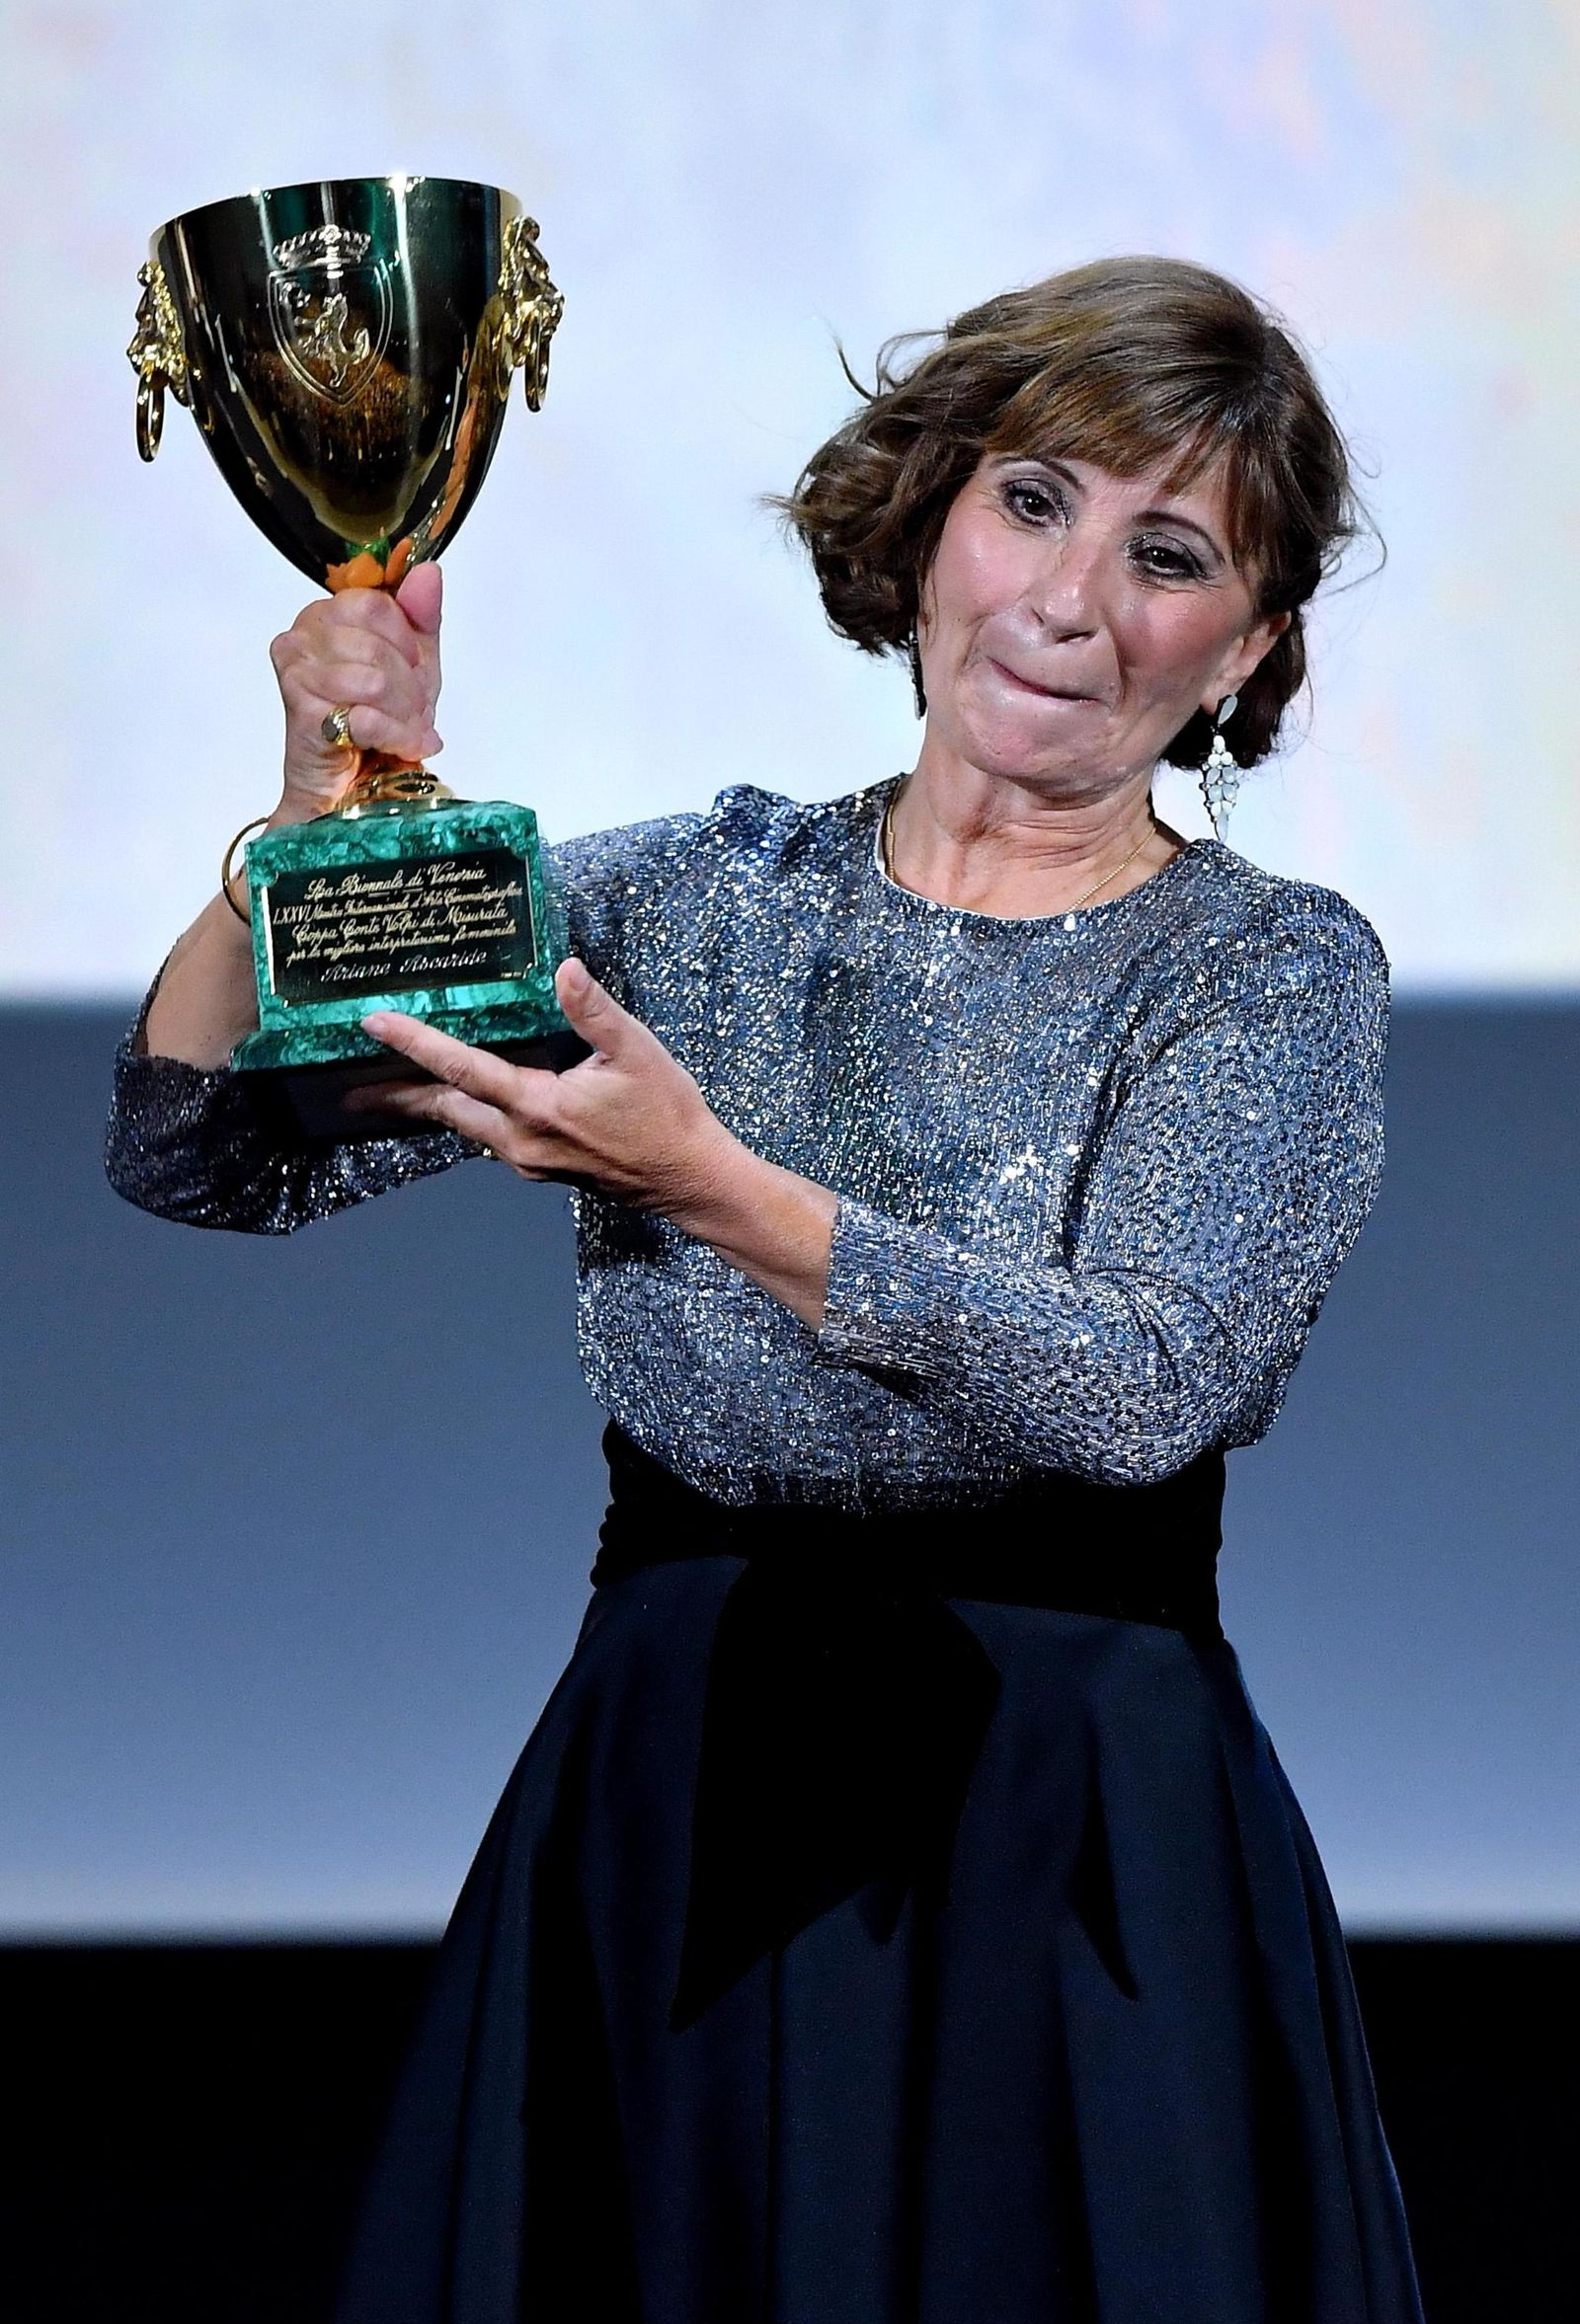 French actress and screenwriter, Ariane Ascaride holds the Volpi Cup award for the best female interpretation in the movie 'Gloria Mundi' of director Robert Guediguian during the awarding ceremony of the 76th annual Venice International Film Festival in Venice, Italy, Saturday, Sept. 7, 2019. (Ettore Ferrari/ANSA via AP)